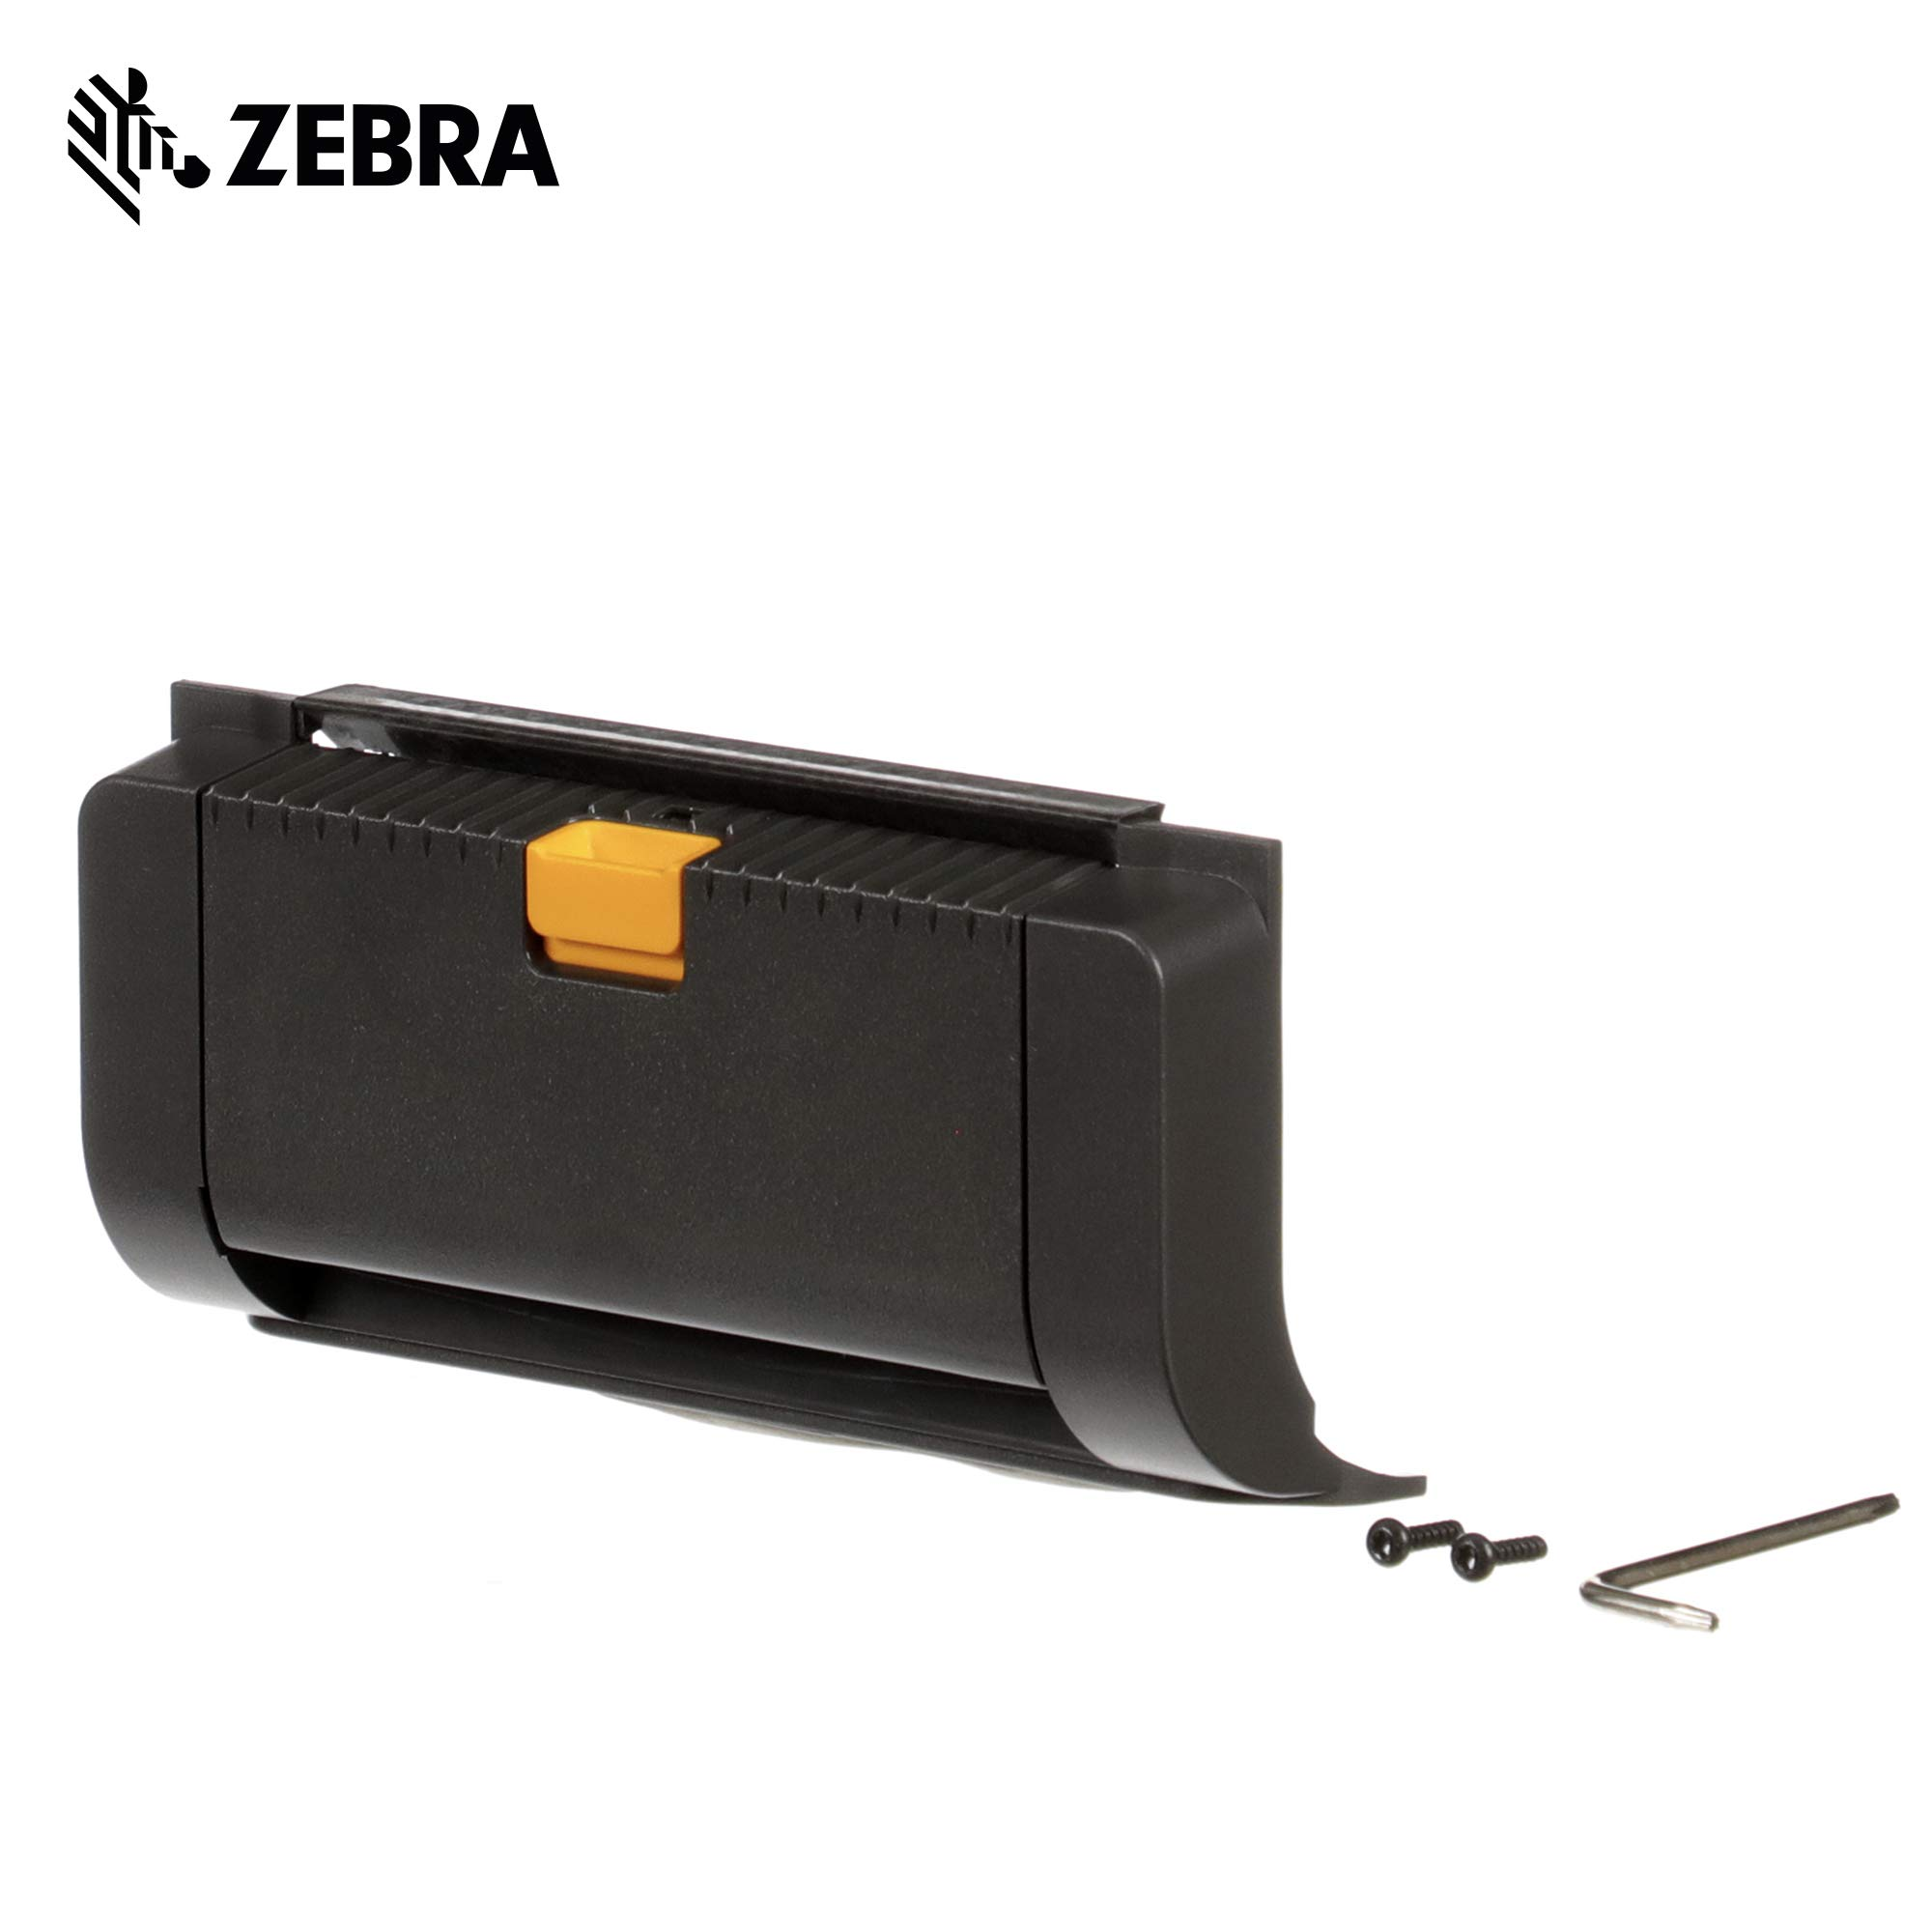 Zebra - Peeler Attachment for ZD420c, ZD420t, and ZD620t Thermal Transfer Desktop Printers - Field Installable